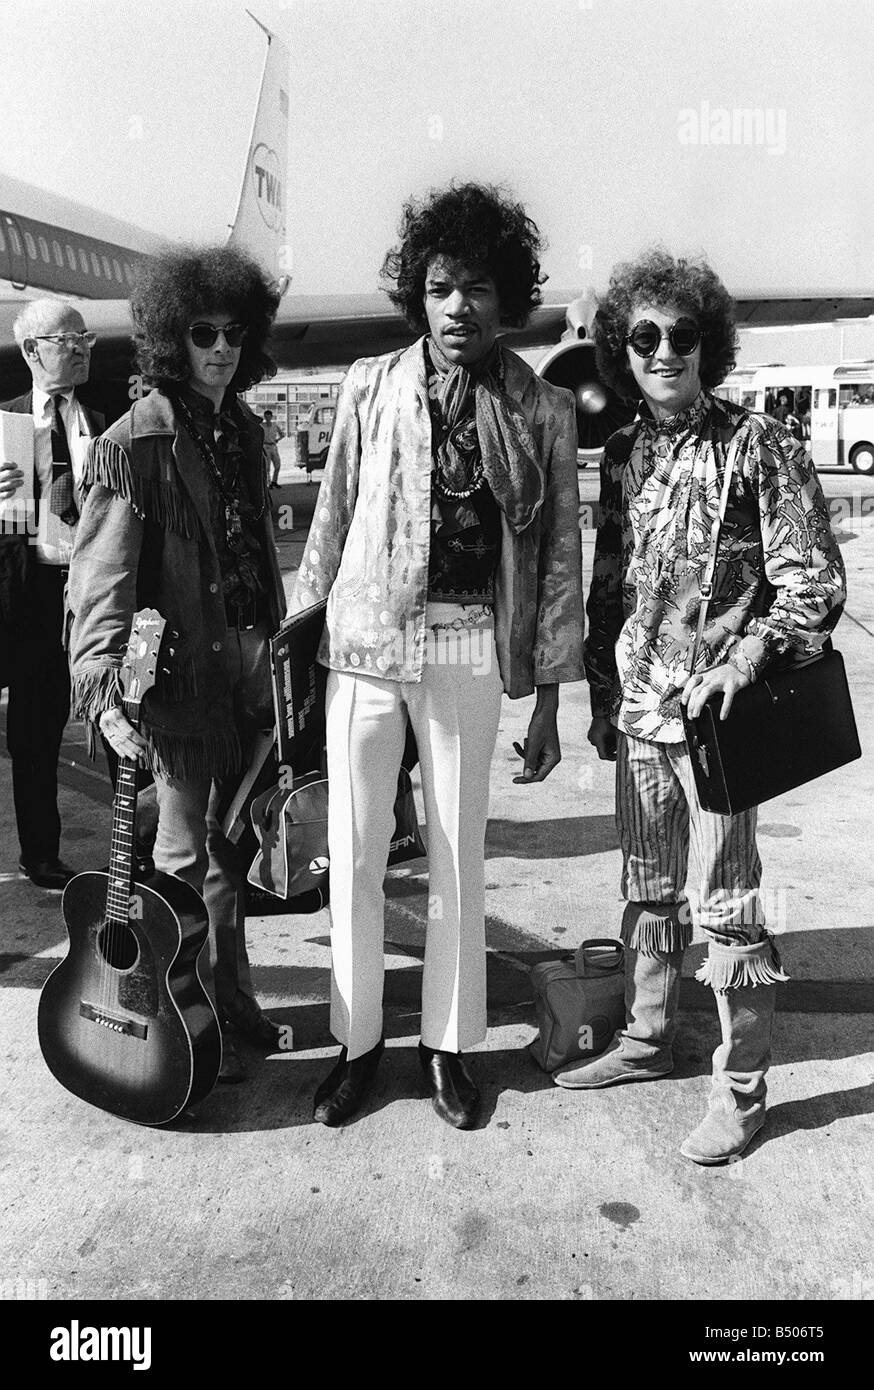 The Jimi Hendrix Experience arriving at Heathrow Airport August 1967 airplane guitar luggage sunglasses - Stock Image